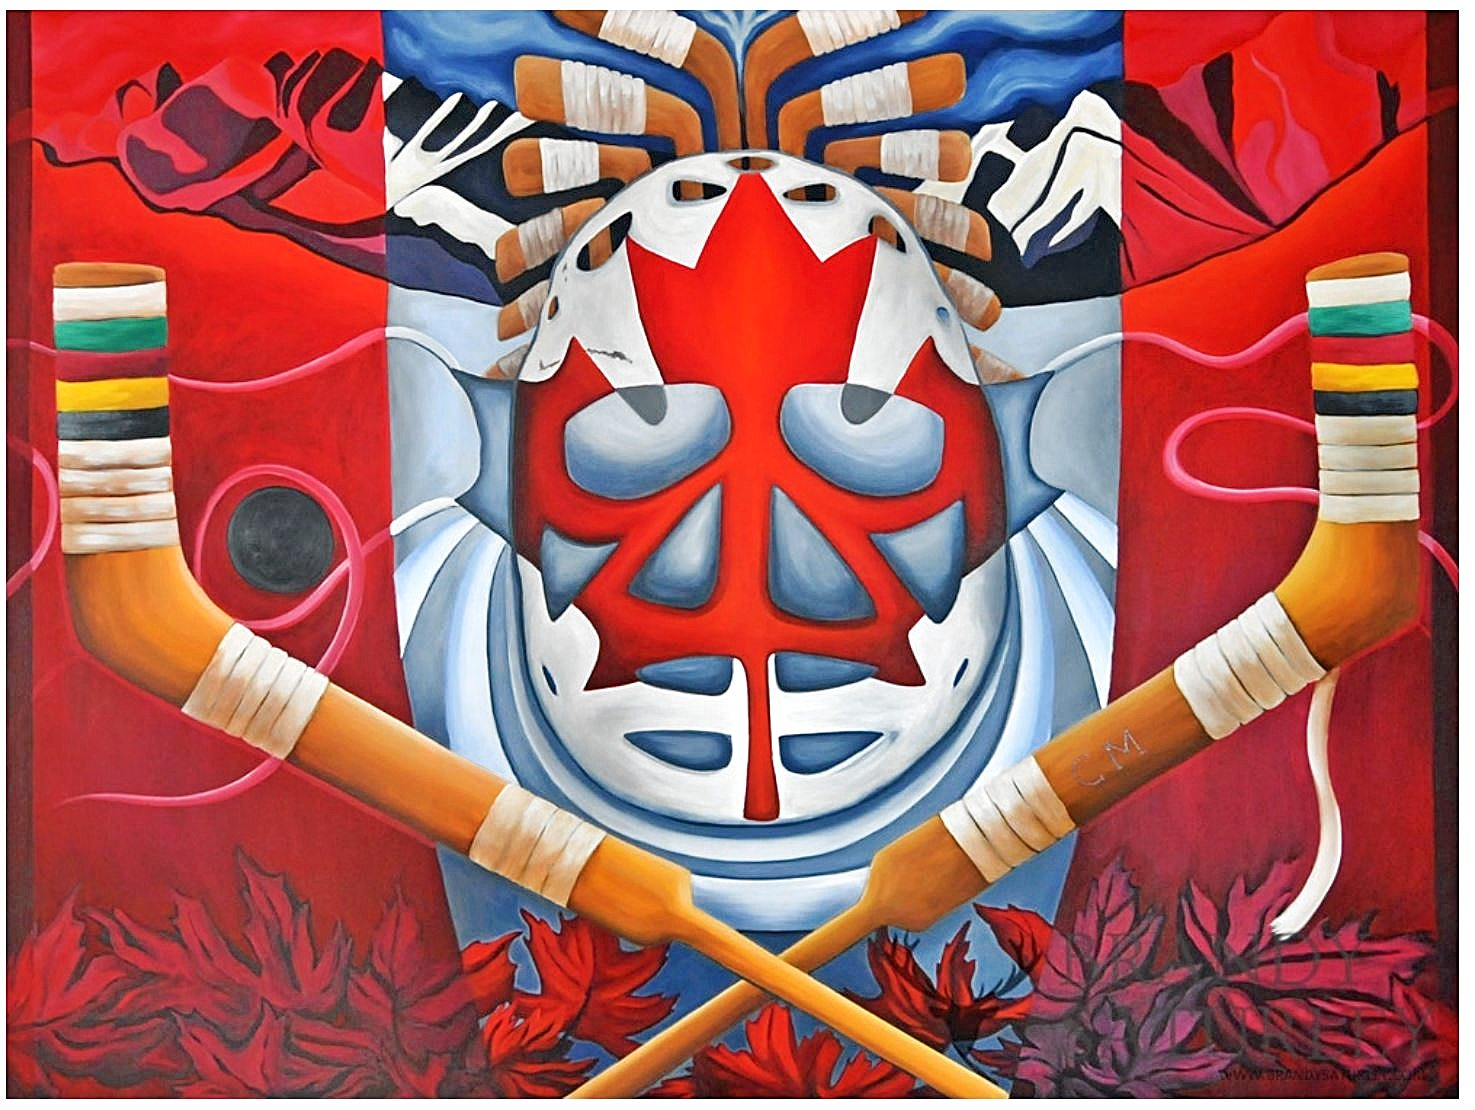 painting of hockey goalie mask on Canadian flag with hockey sticks and mountains by Brandy Saturley